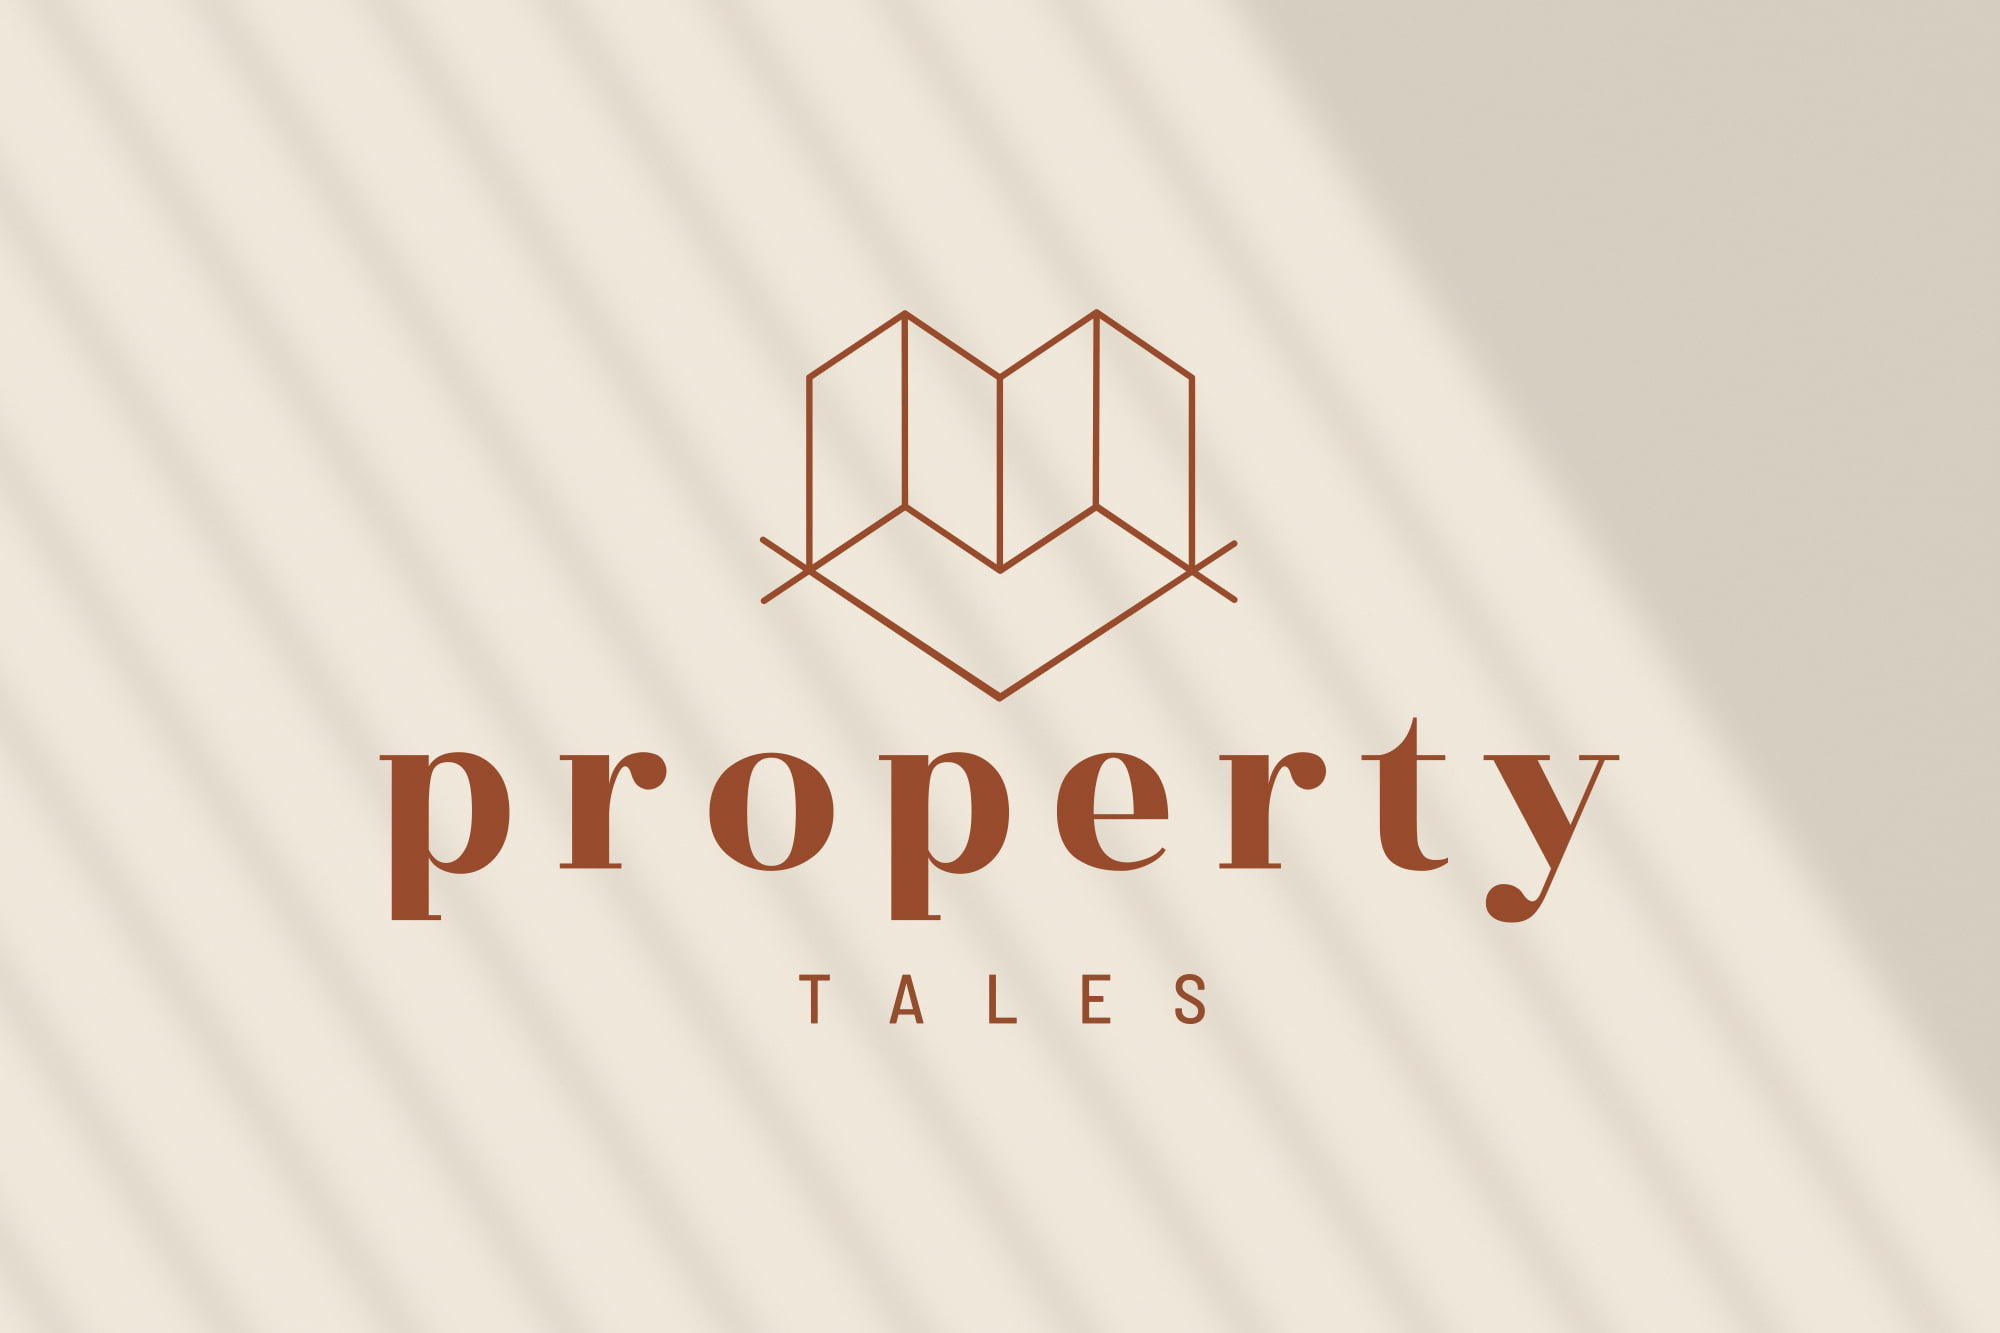 Property tales